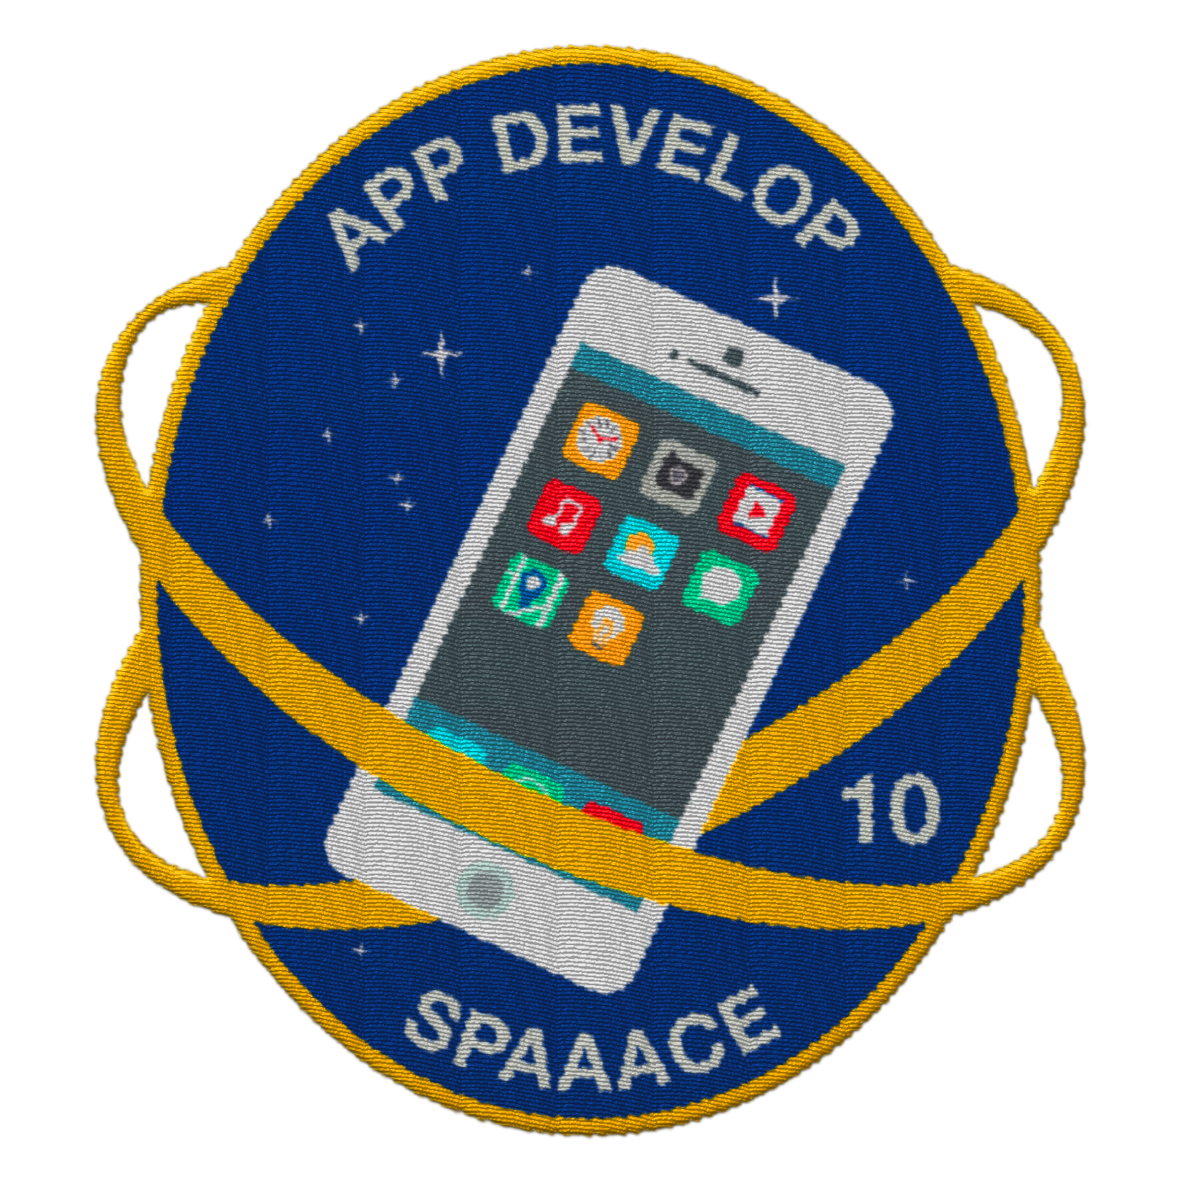 Spaaace - patch app develop